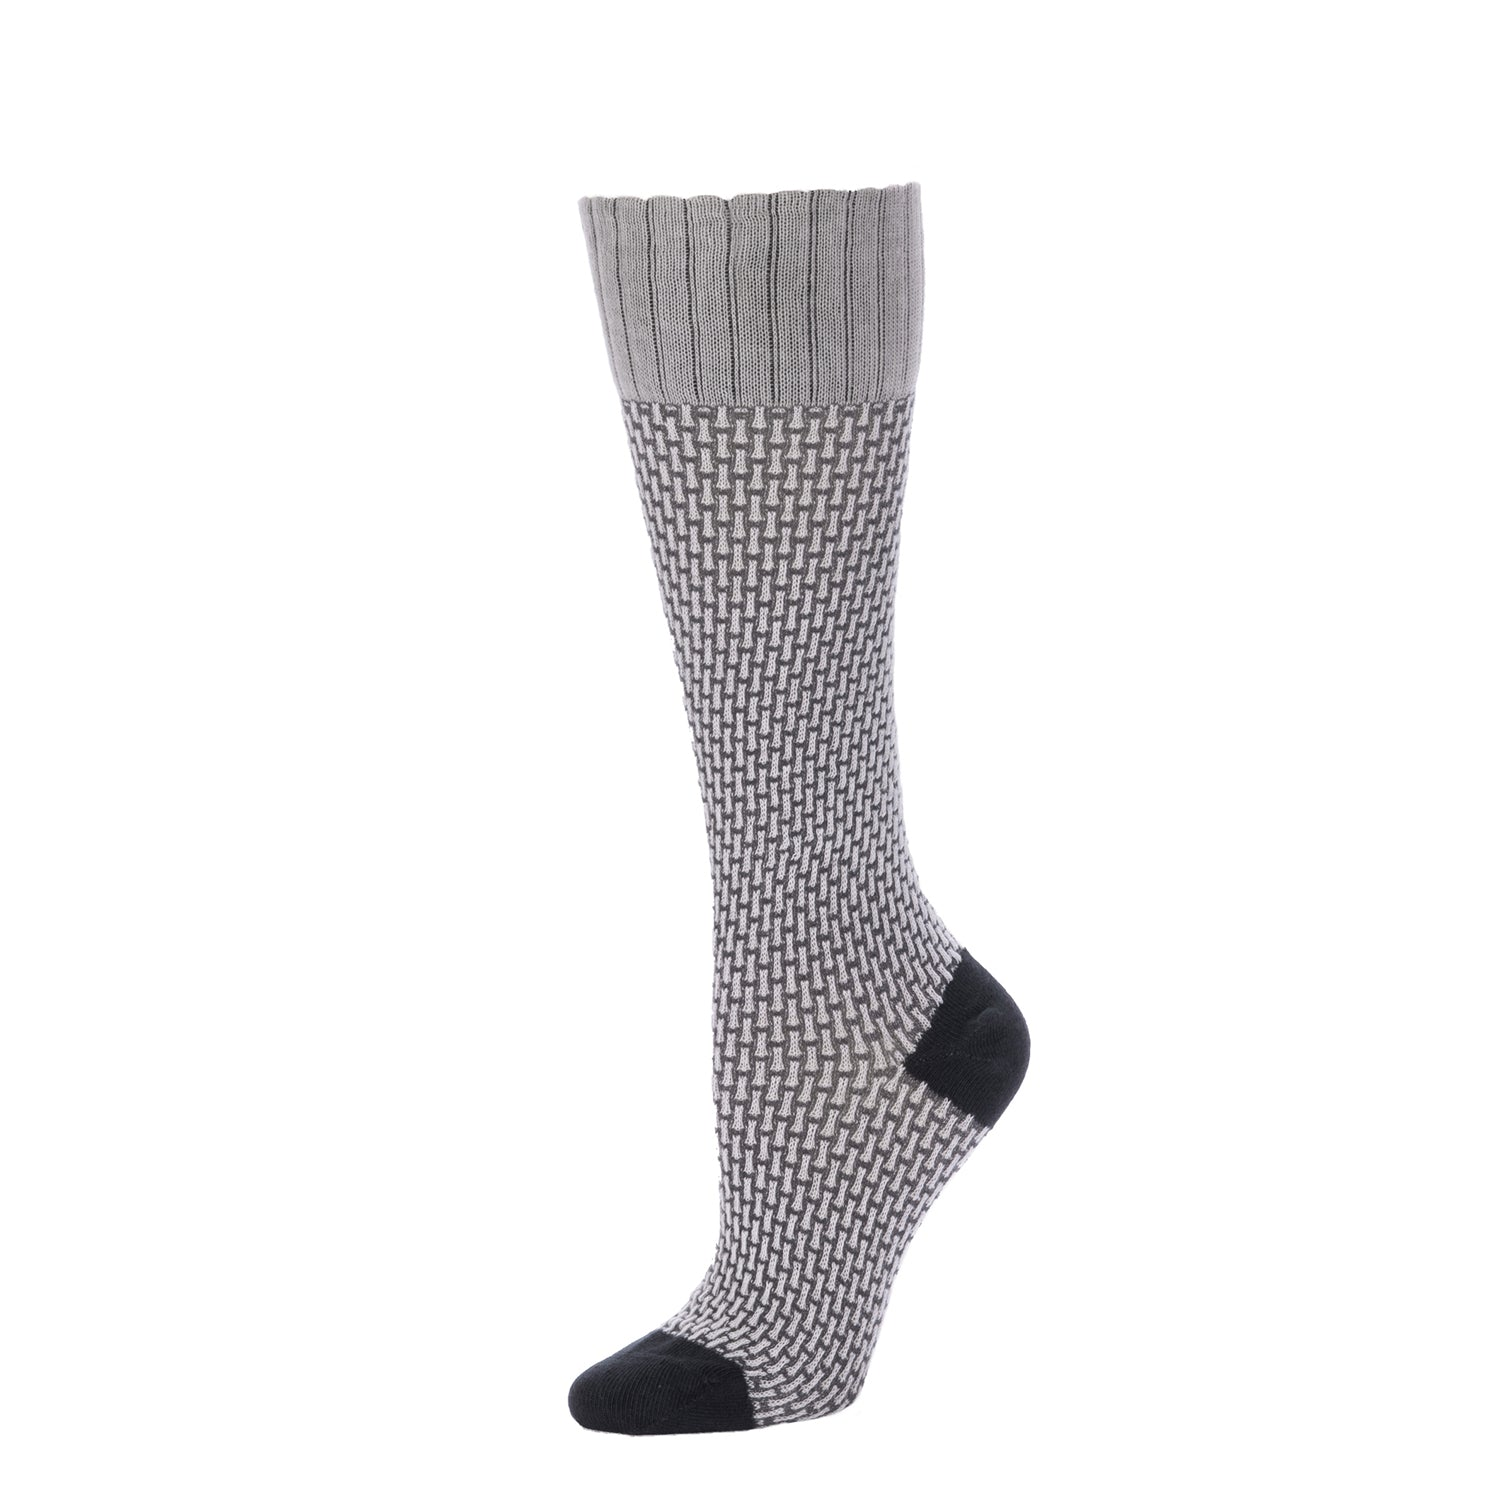 Basket Weave Textured Knee High- Vapor